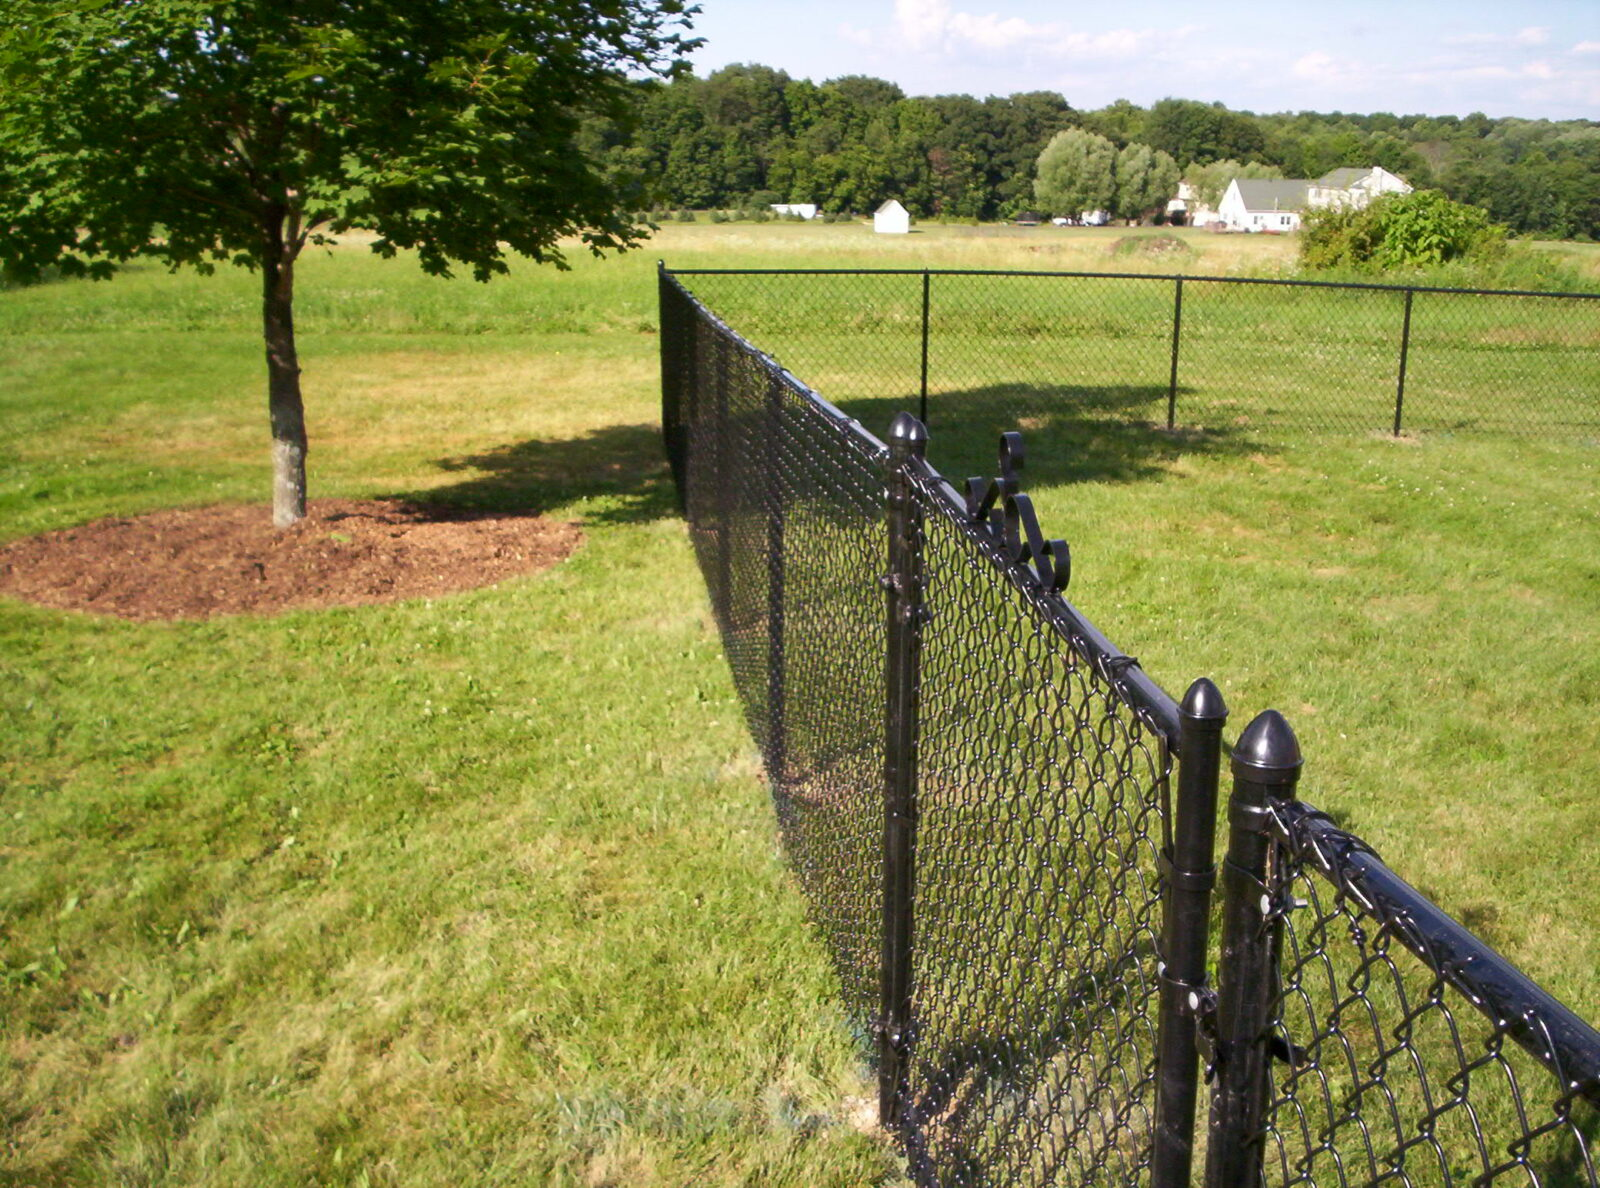 Chain Link Fence Color Or Galvanized Fittings Fabric Gates And 8 2 Butterfly New An All Black Looks Great In Every Season It Blends Well With